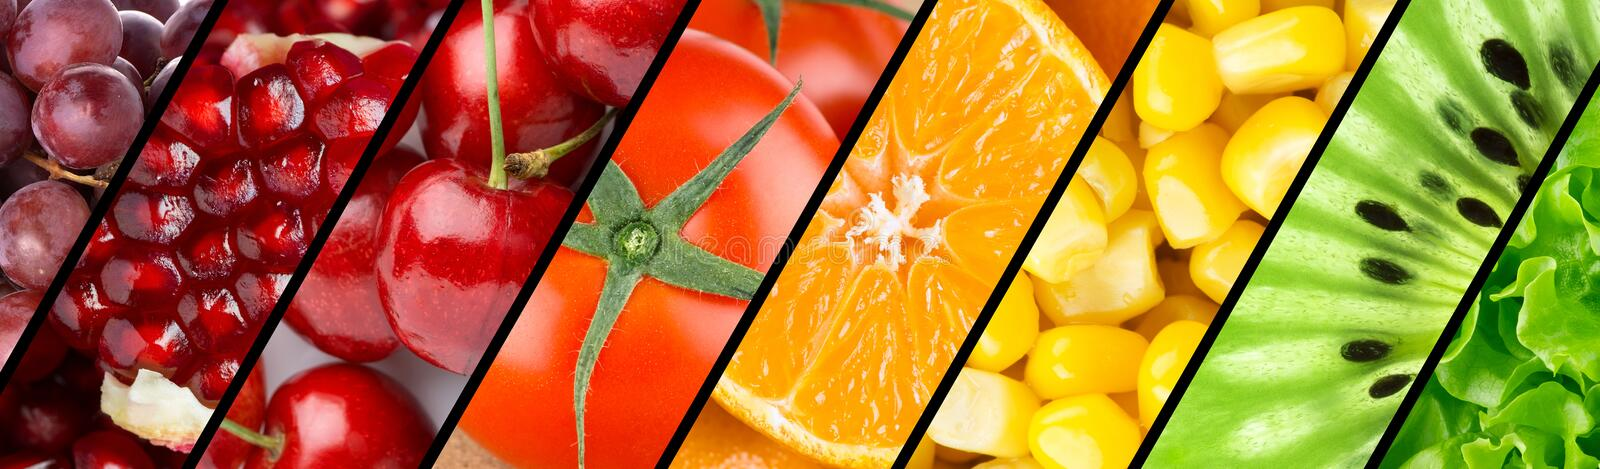 Collection with different fruits, berries and vegetables stock photography